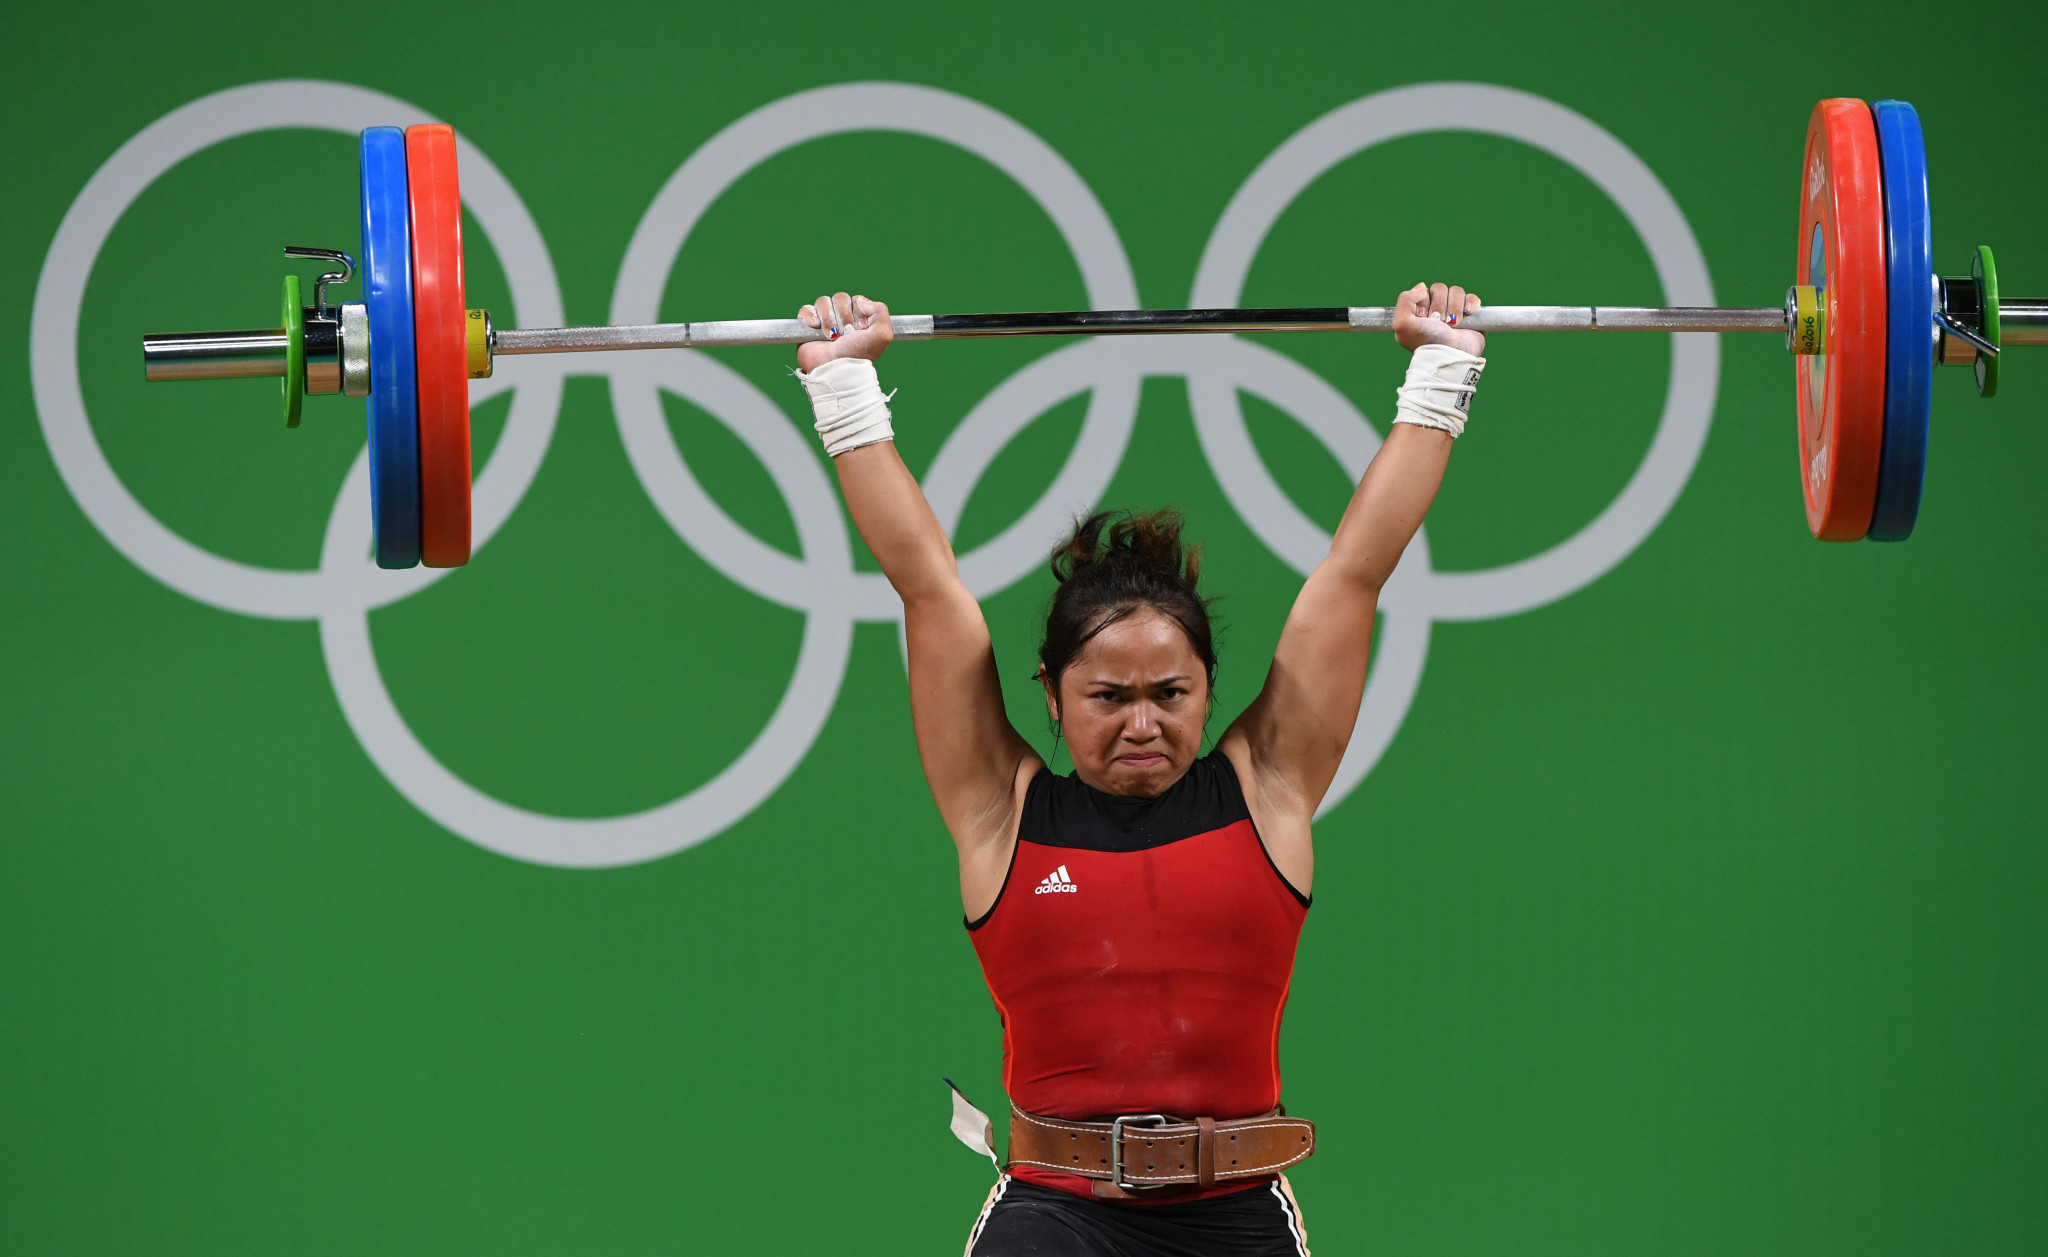 Hidilyn Diaz won a silver medal in weightlifting at the 2016 Olympics in Rio de Janeiro ©Getty Images